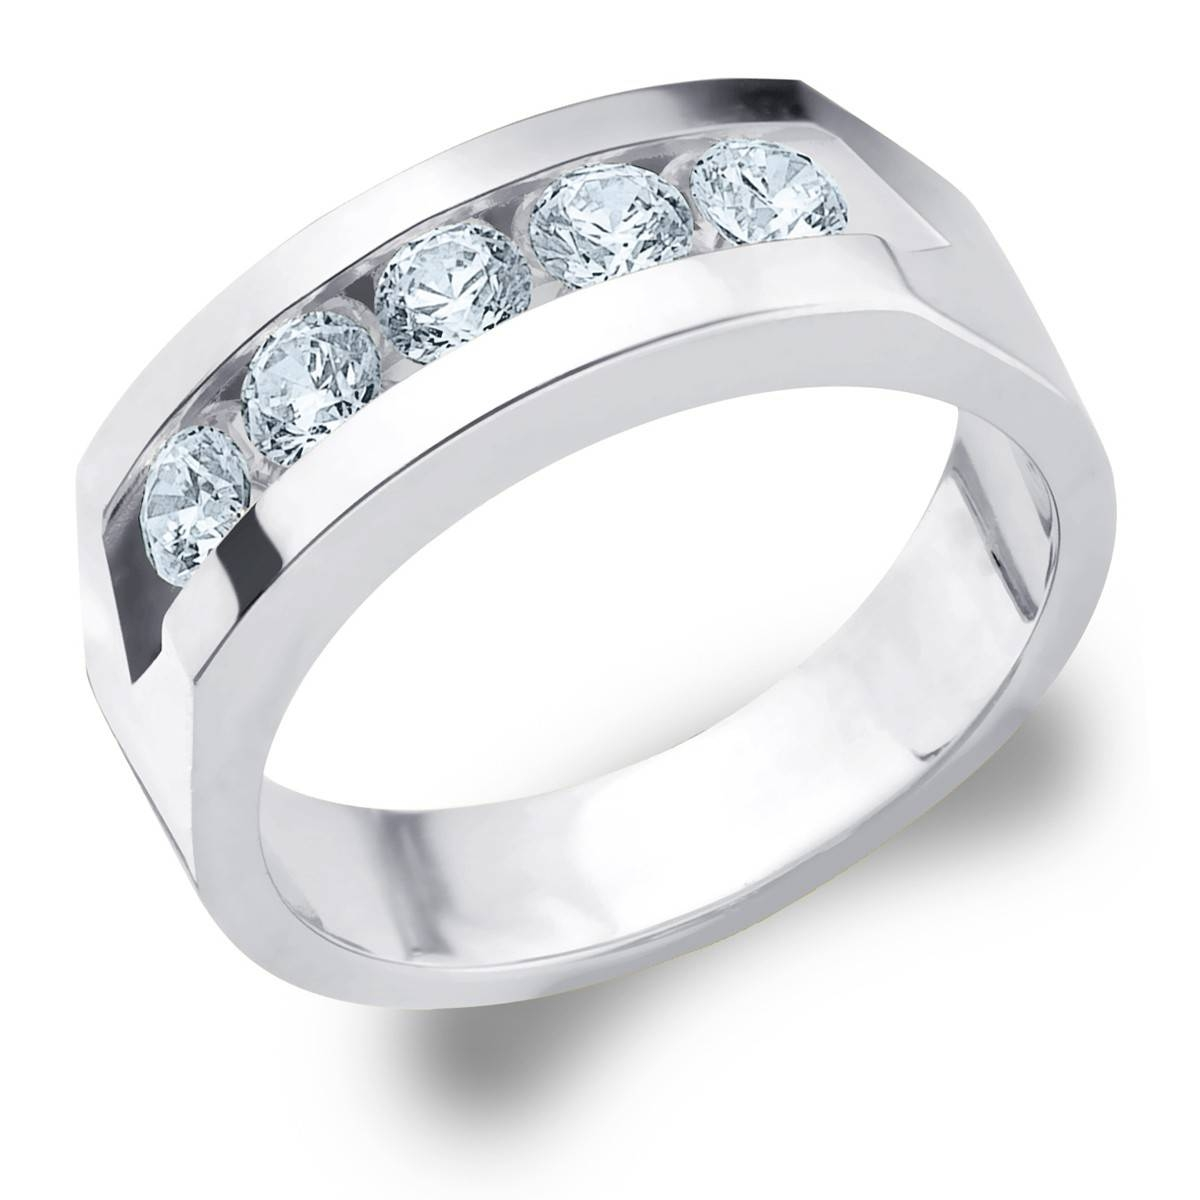 Diamond Rings Channel Set Stones | Wedding, Promise, Diamond Within Current Mens 5 Diamond Wedding Bands (View 2 of 15)